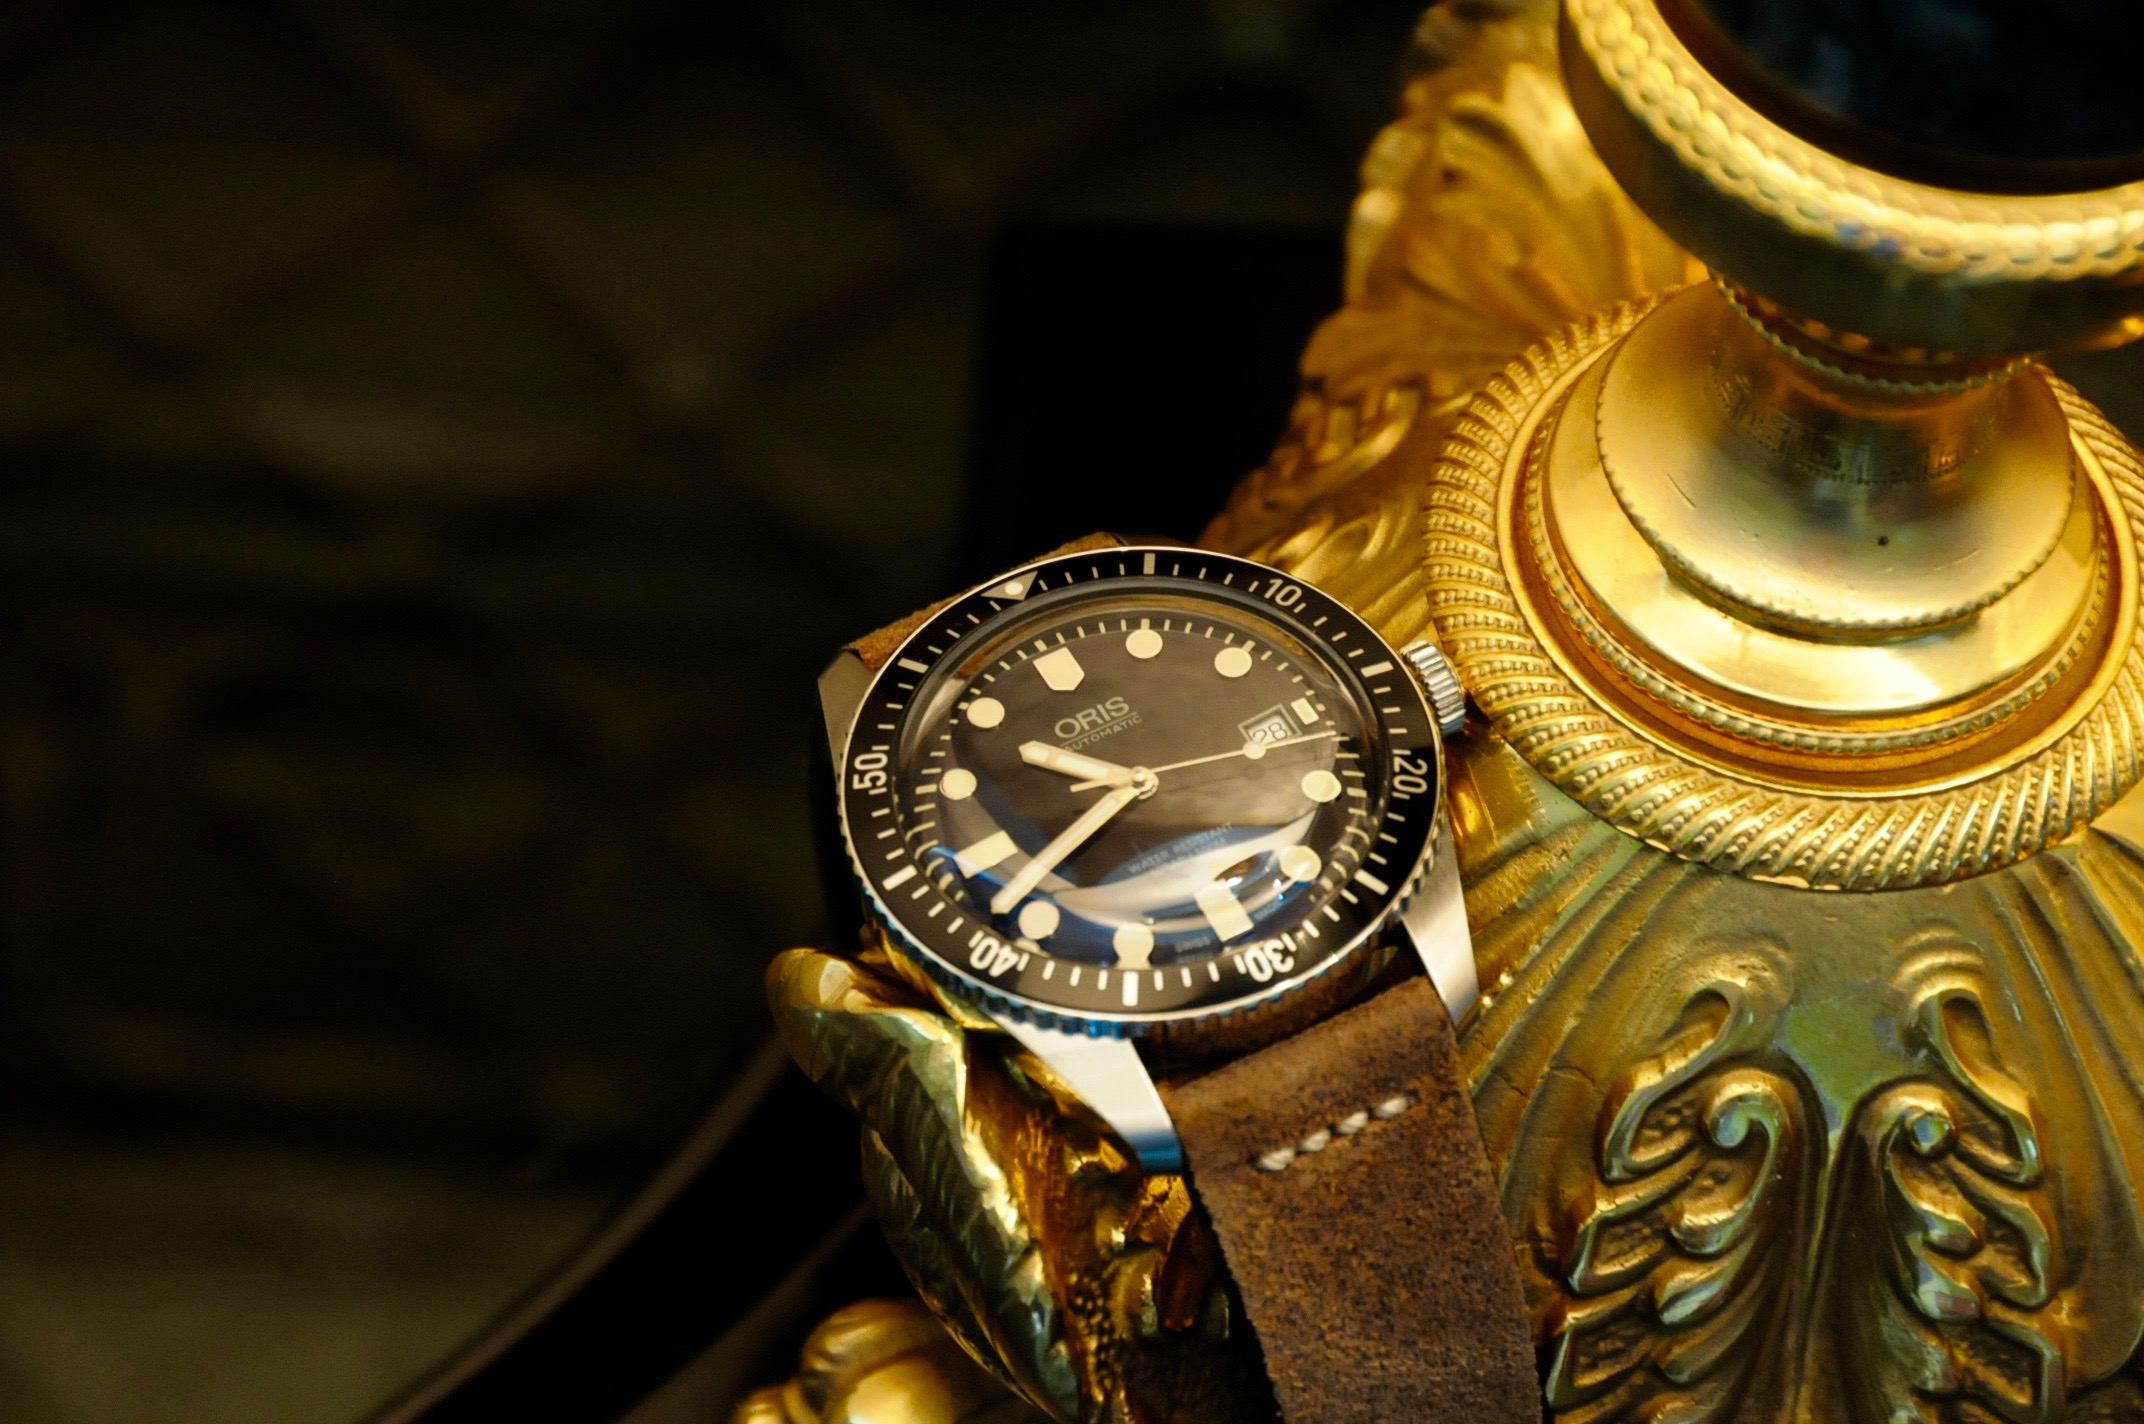 oris watch 65 in the style of james bond dive watches